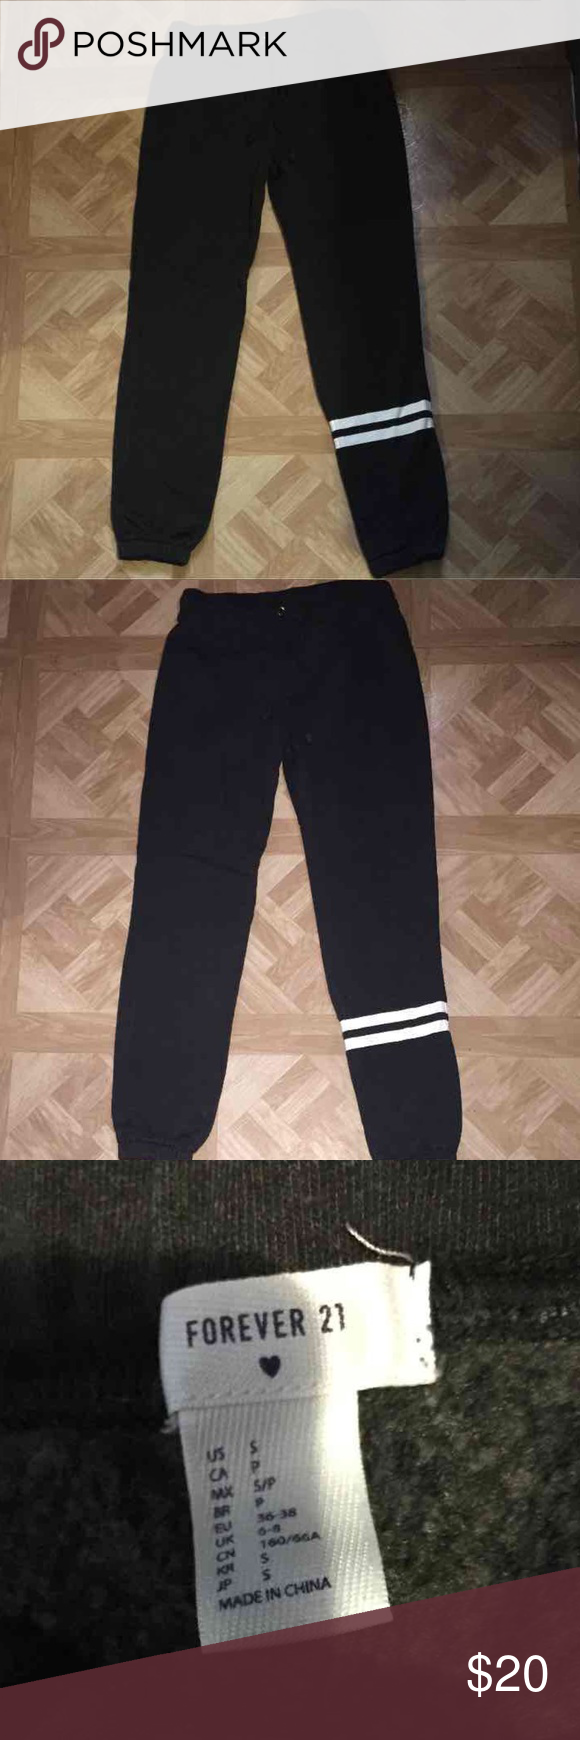 Forever 21 Skinny Jogger Sweatpants Dark charcoal grey color, Almost black With two white stripes on right leg Super soft and comfy Womens size small     Like New Condition Forever 21 Pants Track Pants & Joggers